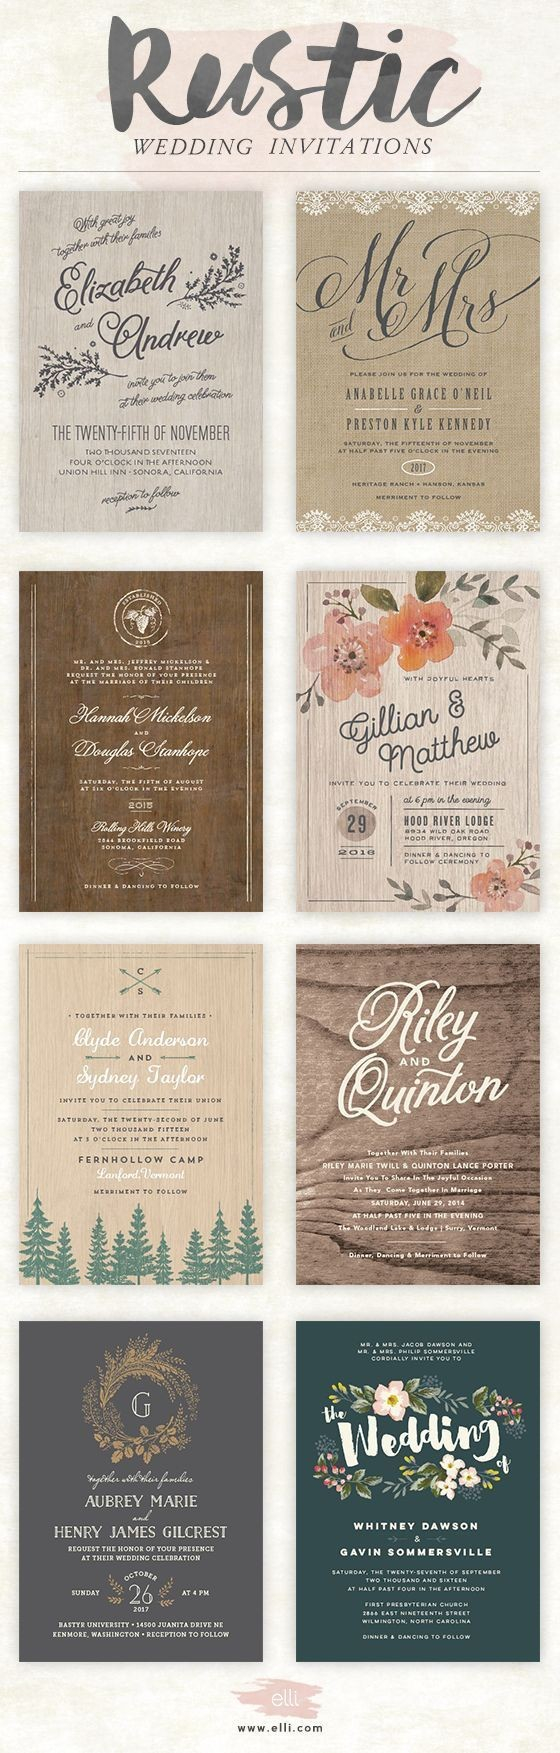 Camping Wedding Invitations Camping Wedding Invitations Lovely 28 Best Camp Wedding Images On